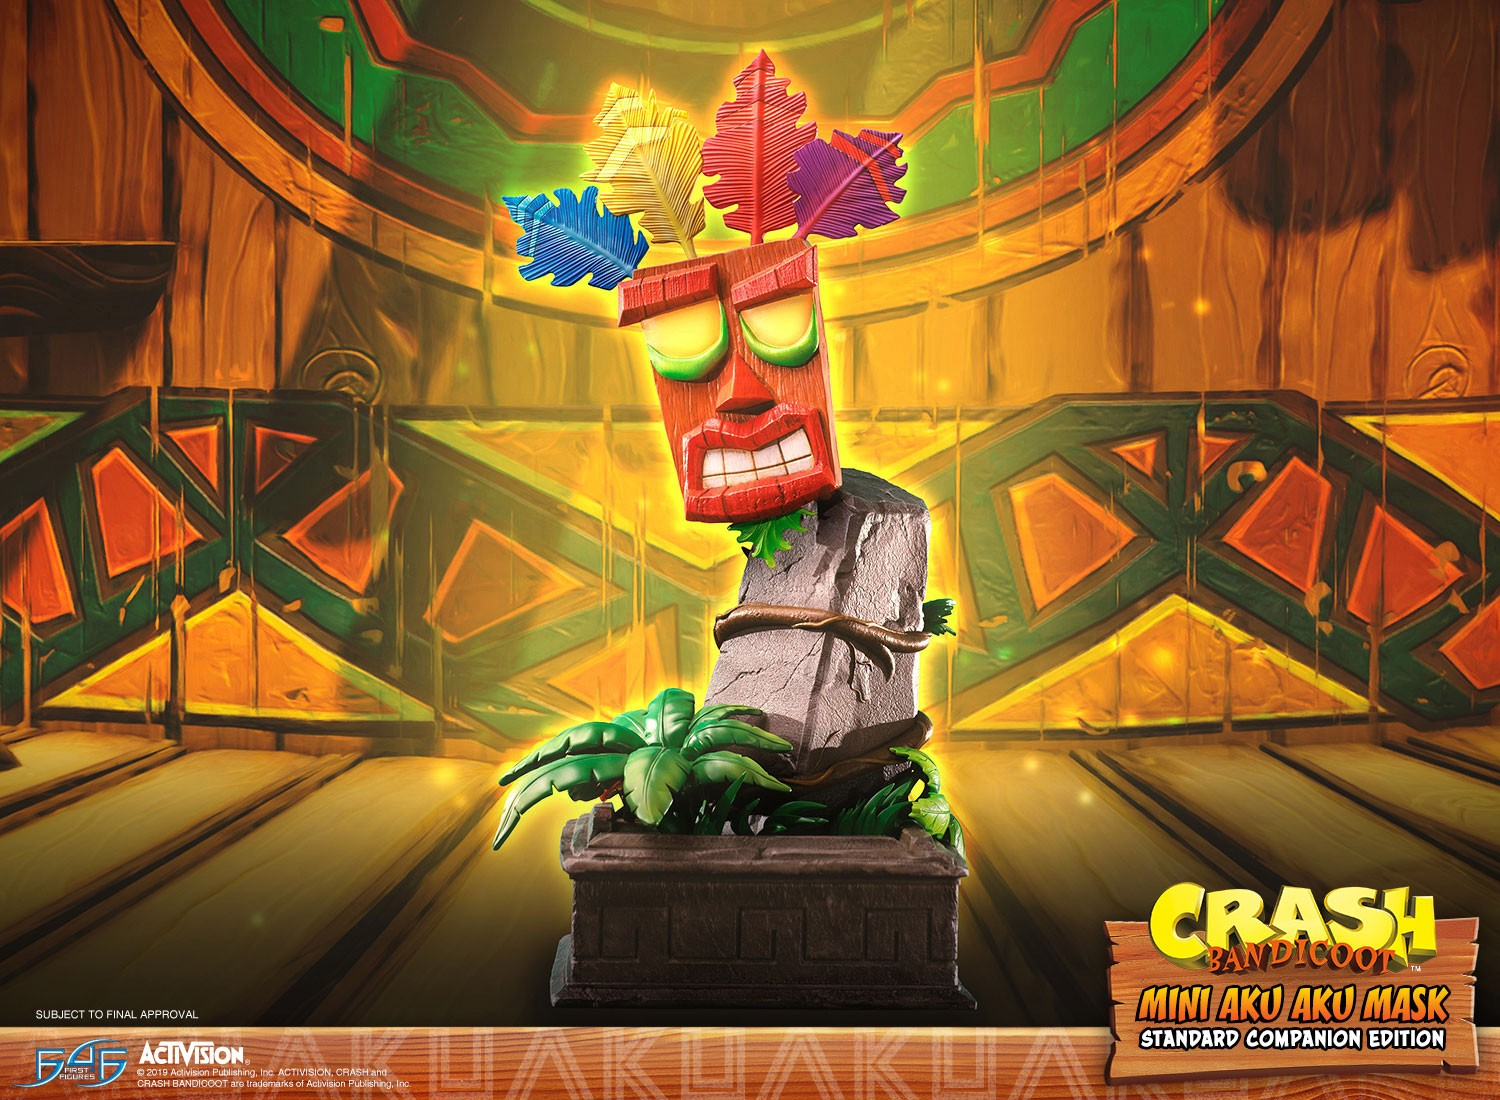 Crash Bandicoot™ - Mini Aku Aku Mask Standard Companion Edition